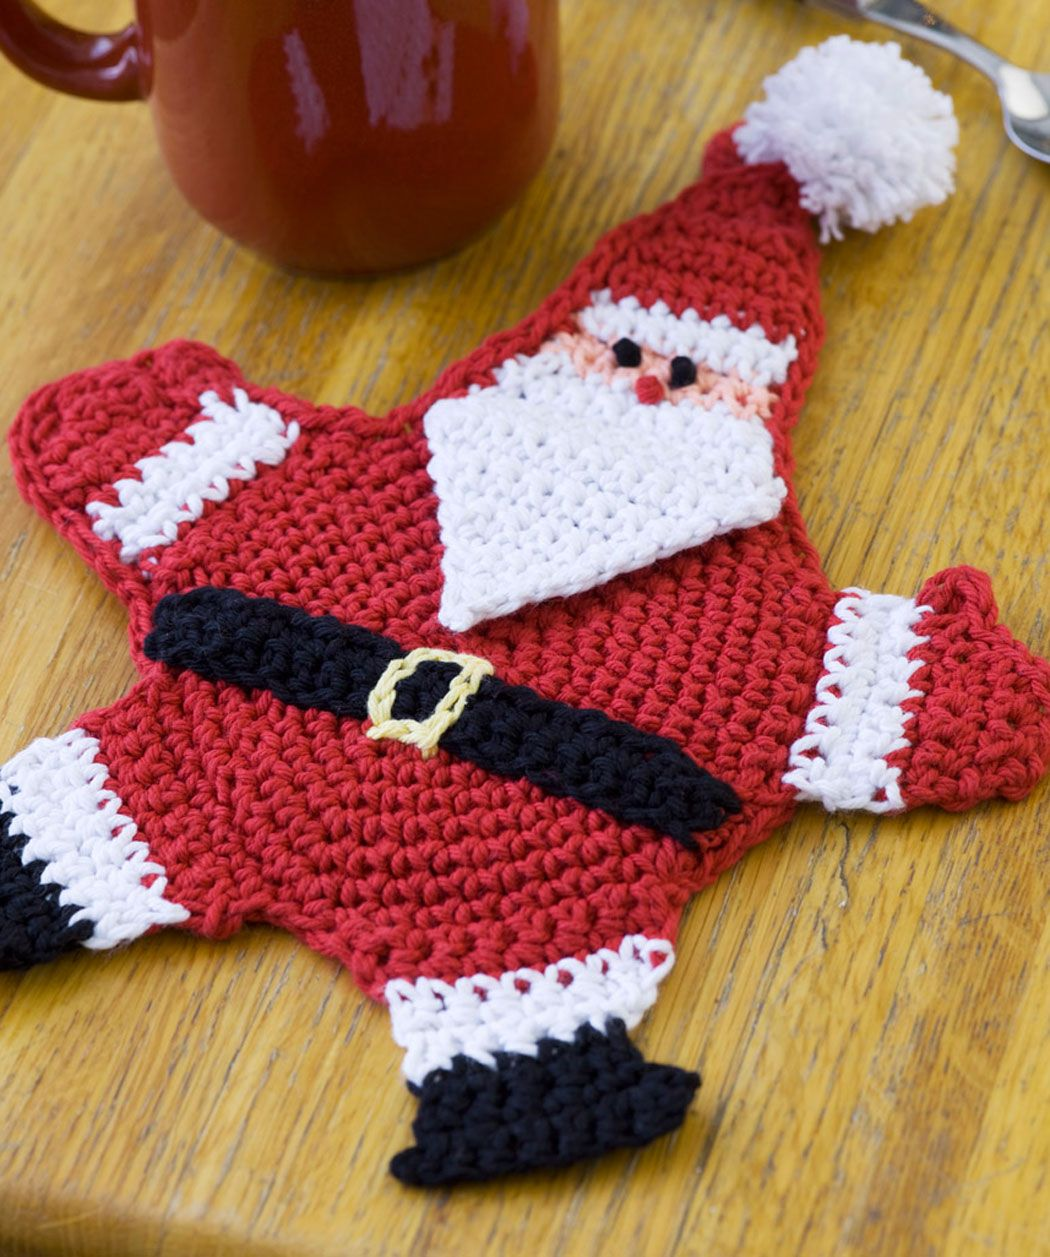 Mr. Claus Potholder Free Crochet Pattern from Red Heart Yarns ...